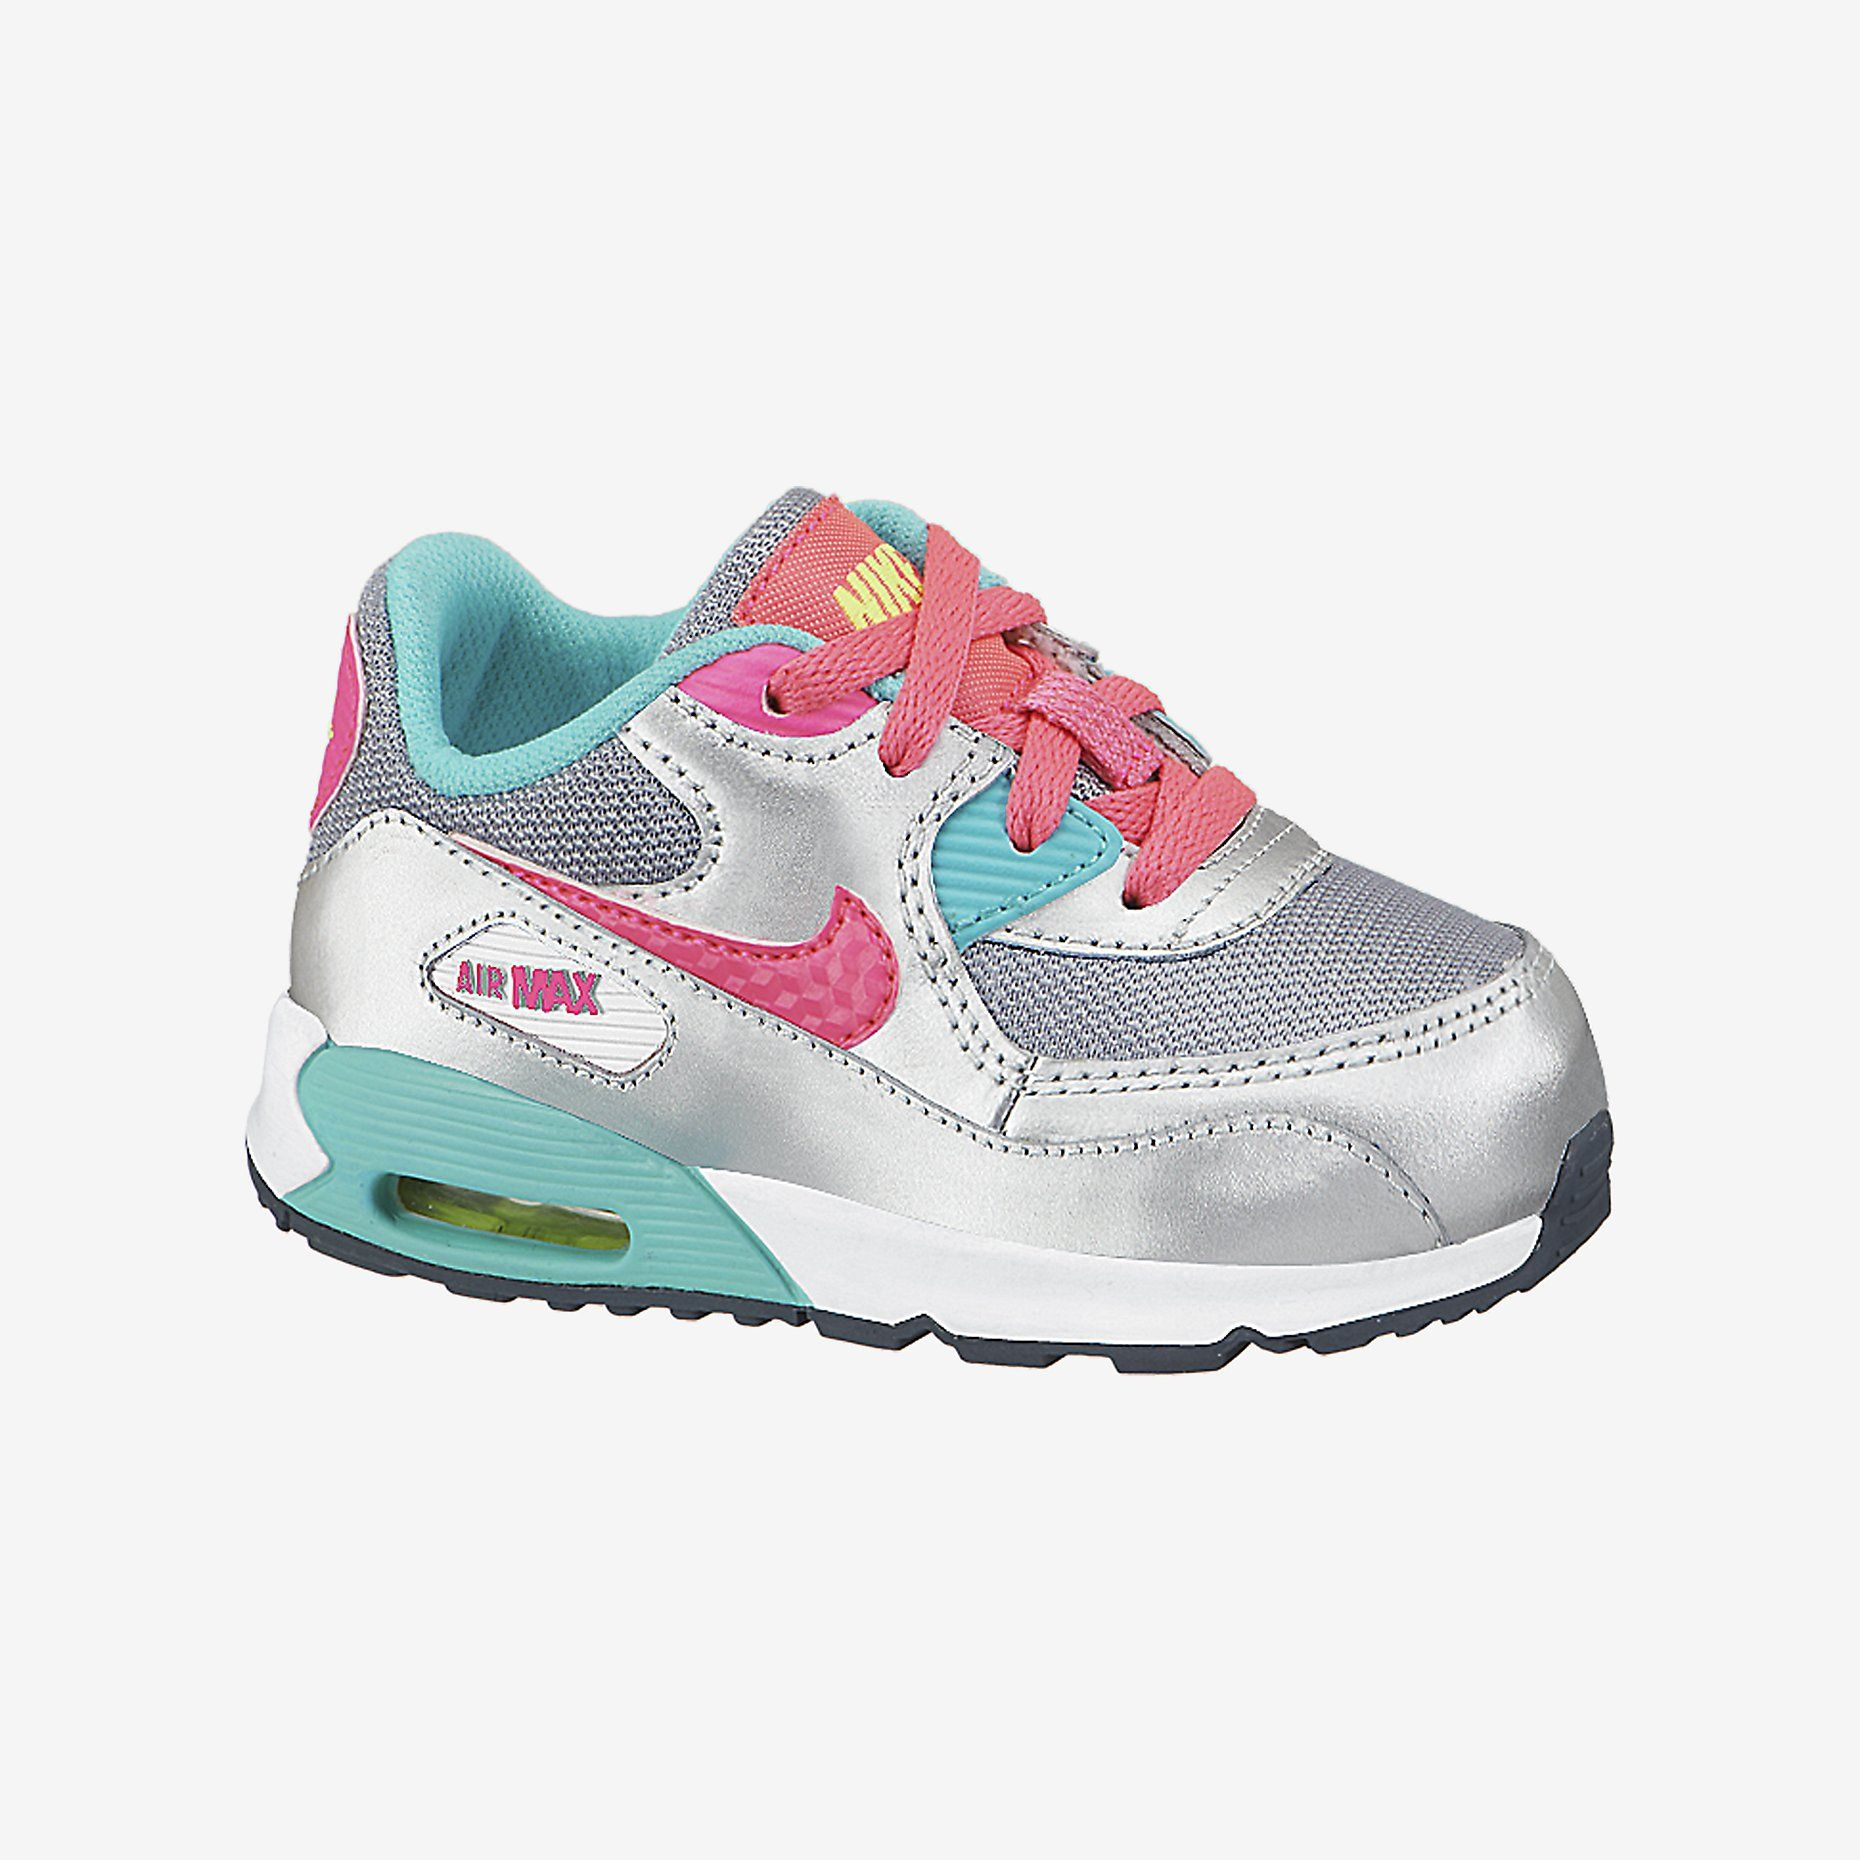 Nike Air Max 90 2007 (2c 10c) InfantToddler Girls' Shoe